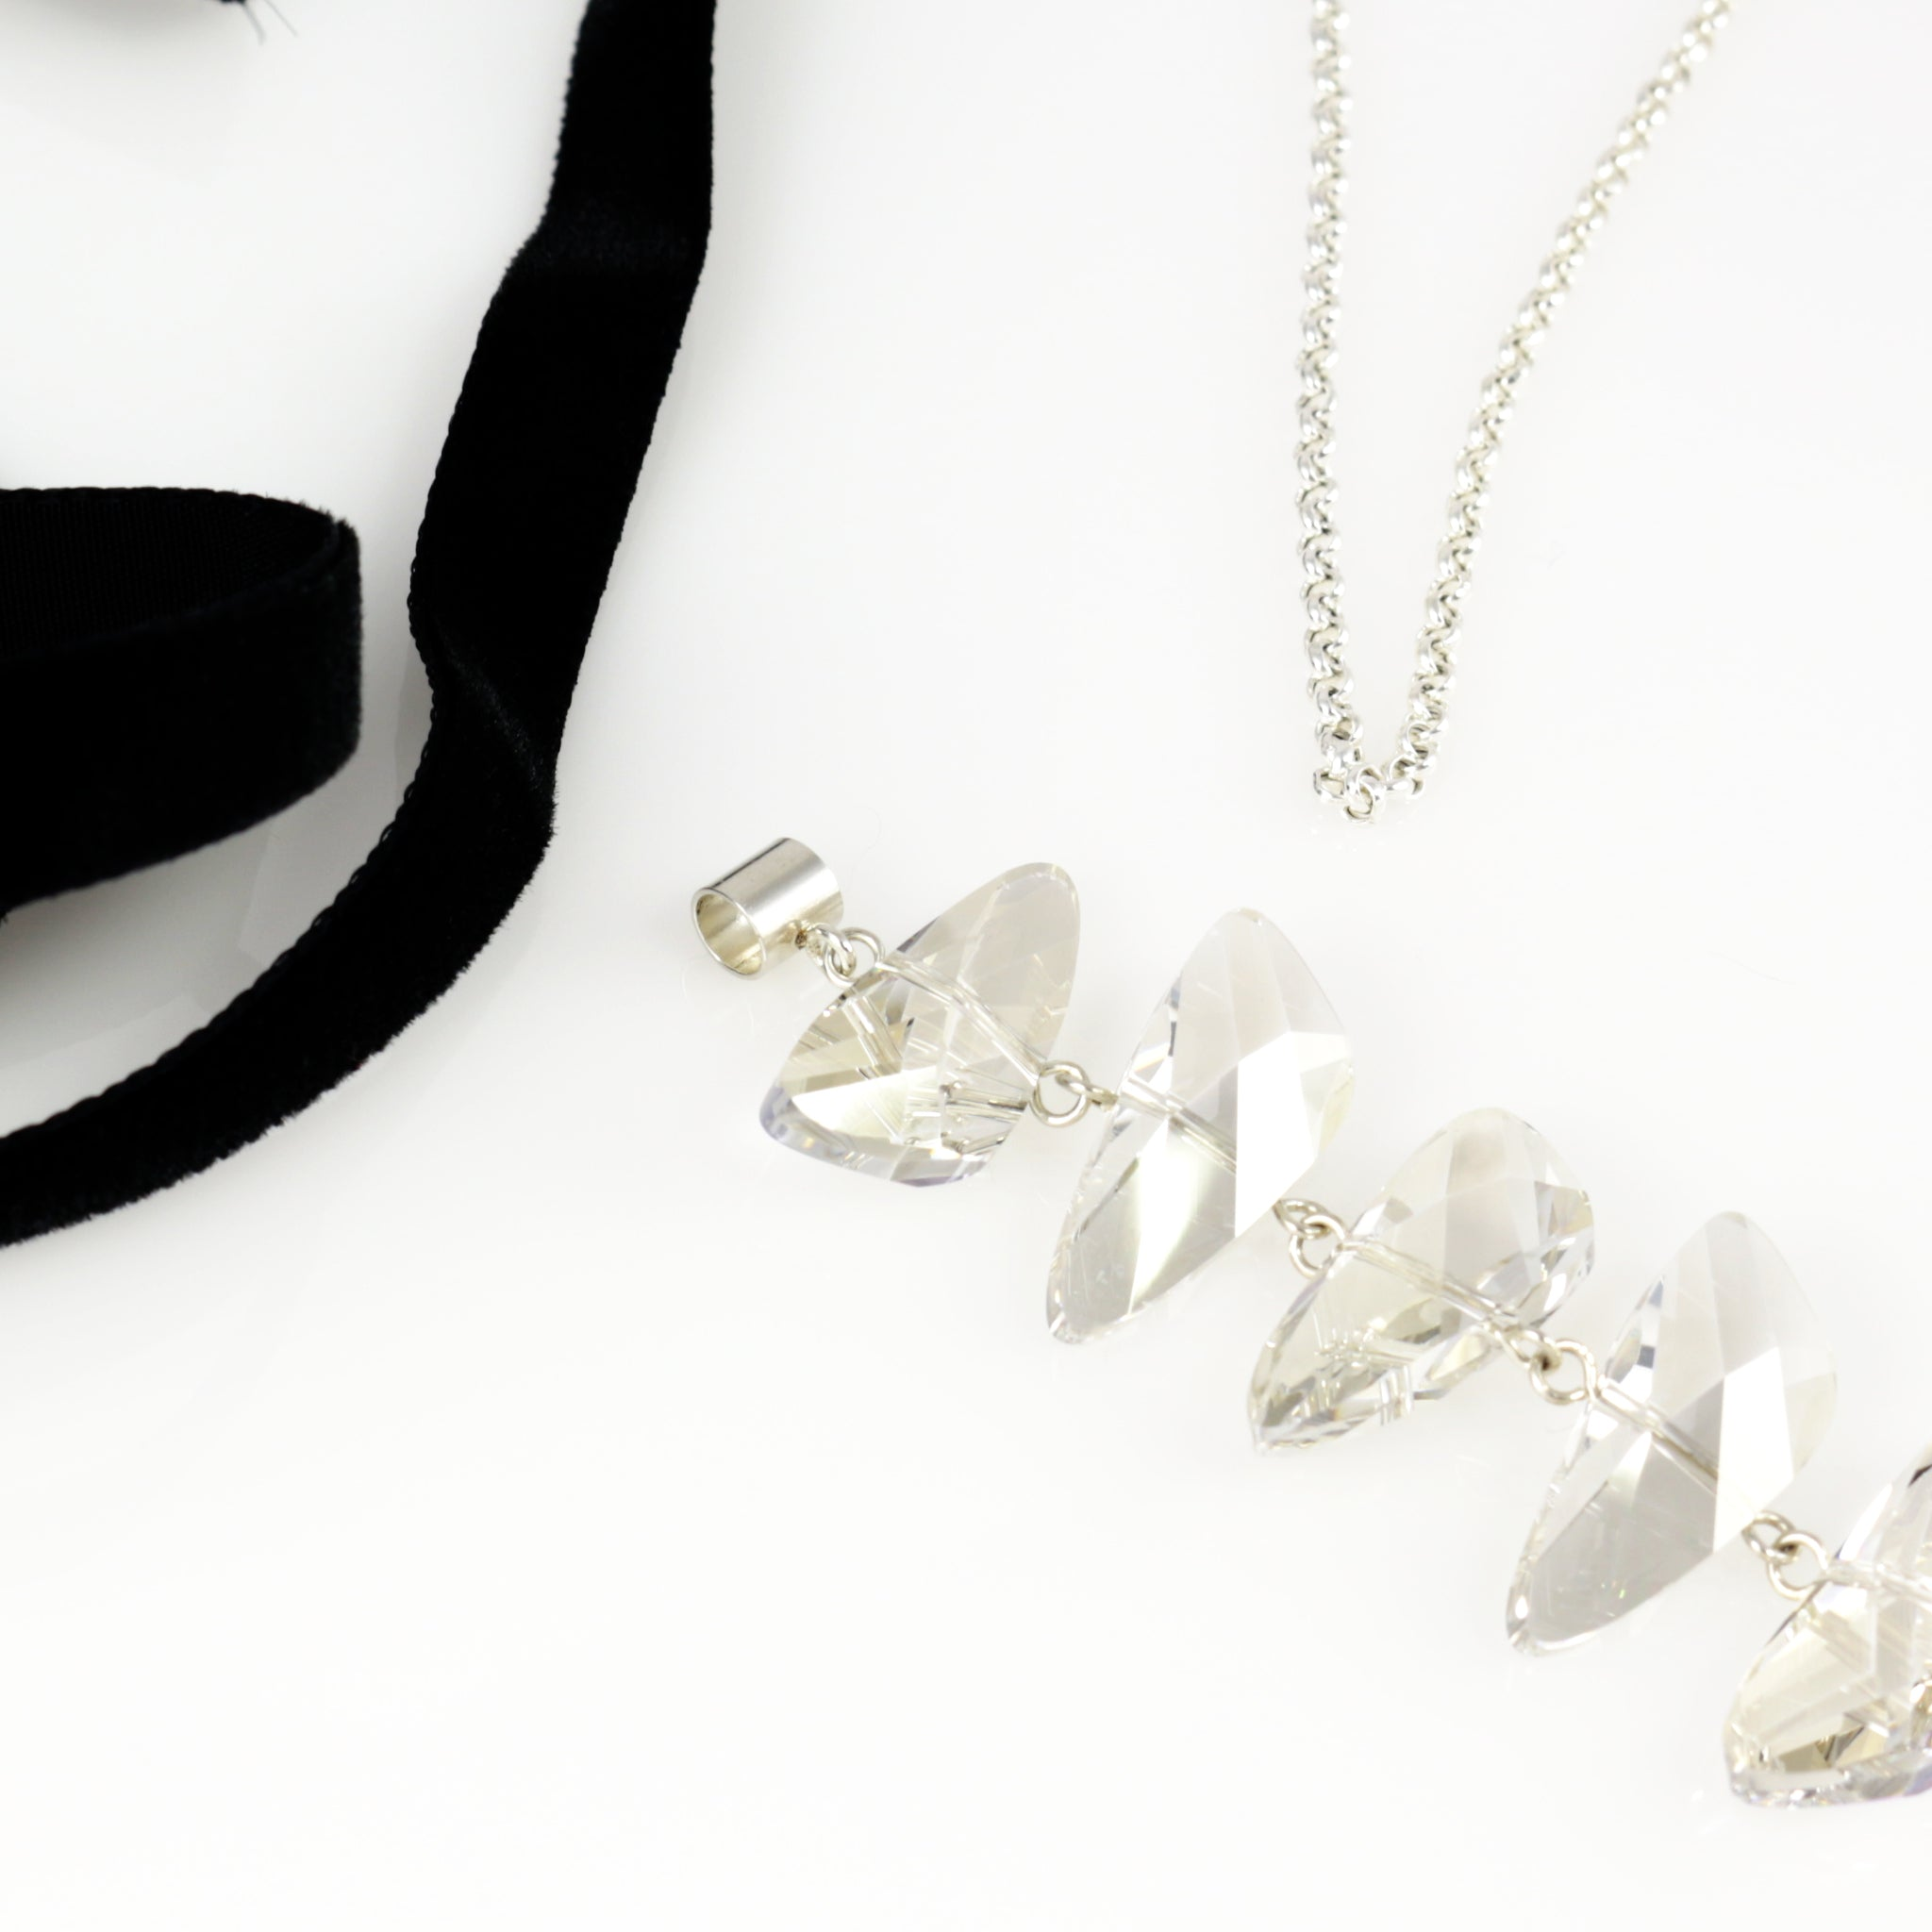 Reflections Necklace in Silver Shade